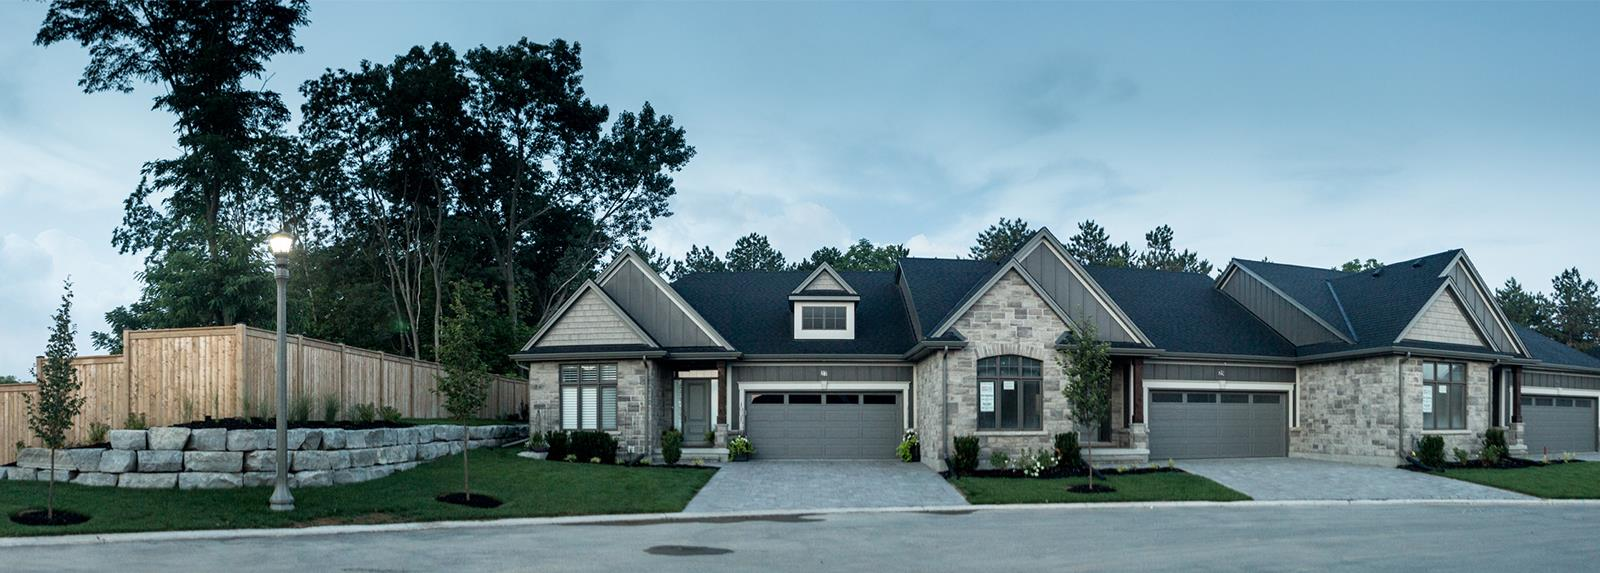 Grey Forest Homes Ltd. Tanbark Heights Exterior